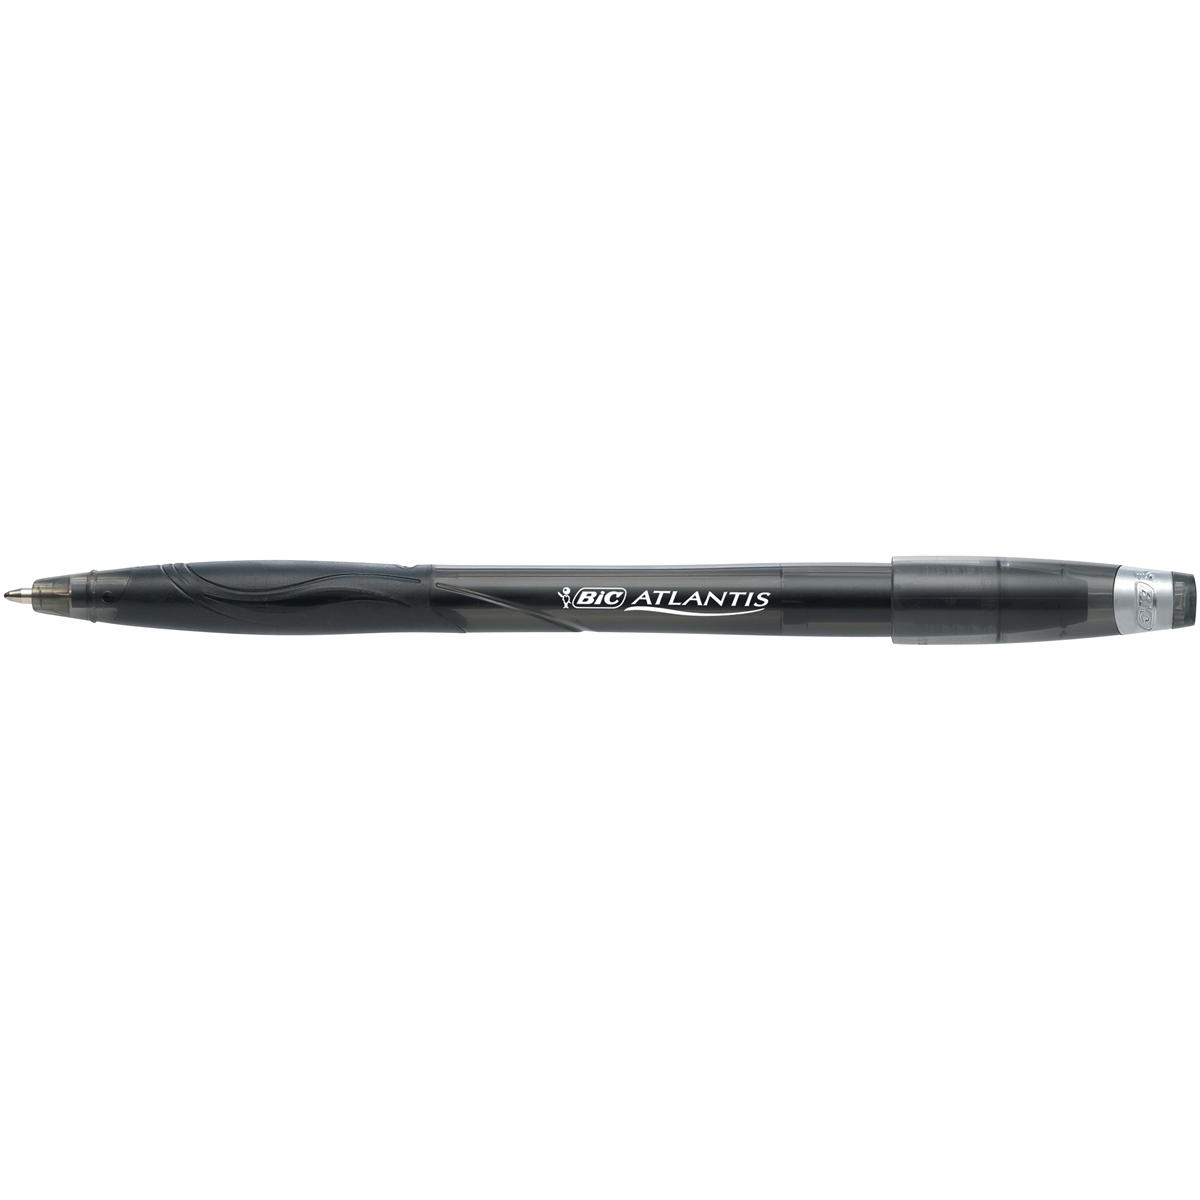 Bic Atlantis Stic Ball Pen Cushion Grip Medium 1.0mm Tip 0.32mm Line Black Ref 837386 [Pack 12]